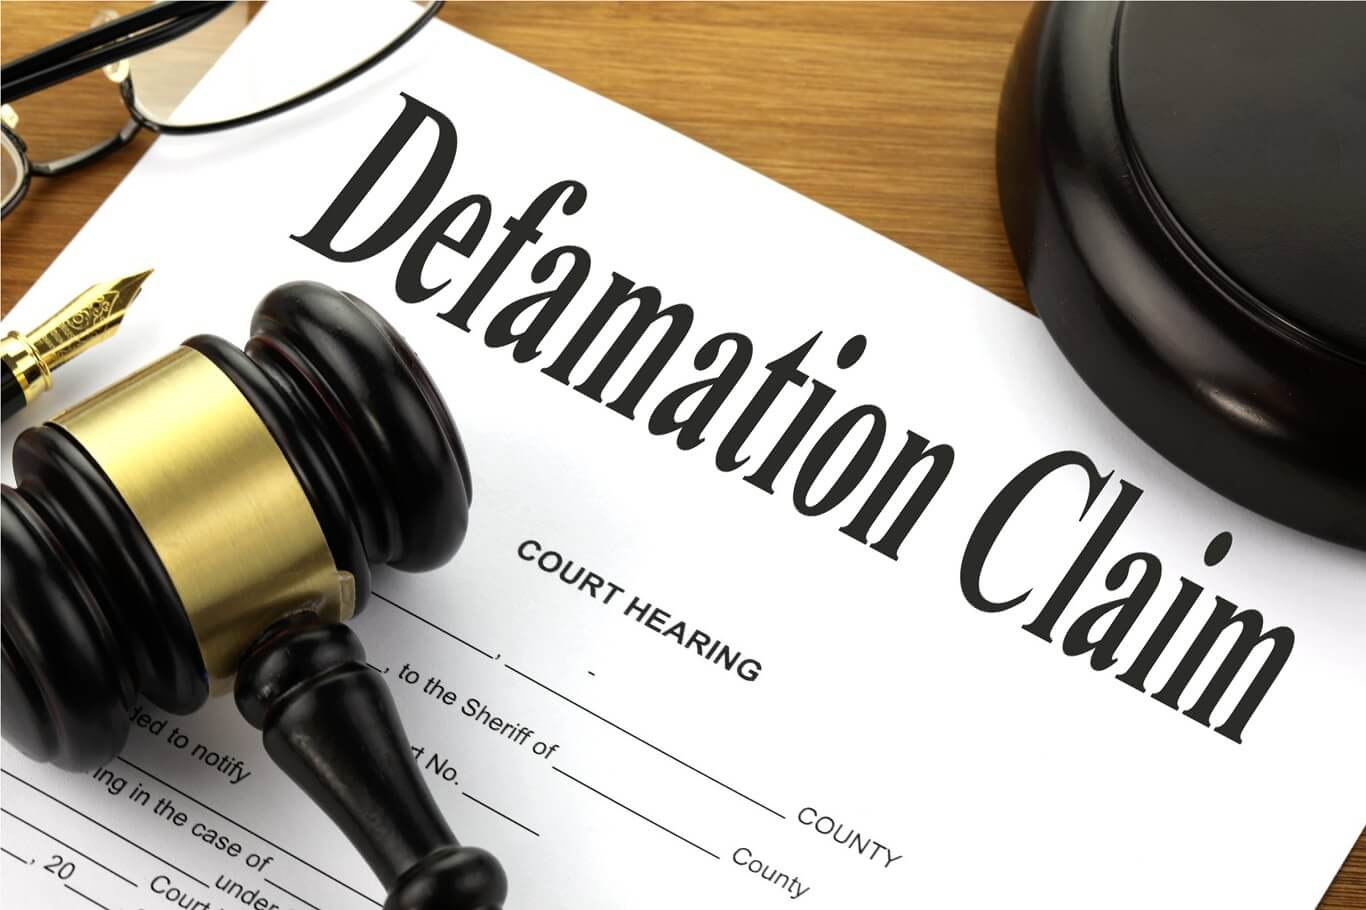 how to file defamation lawsuit